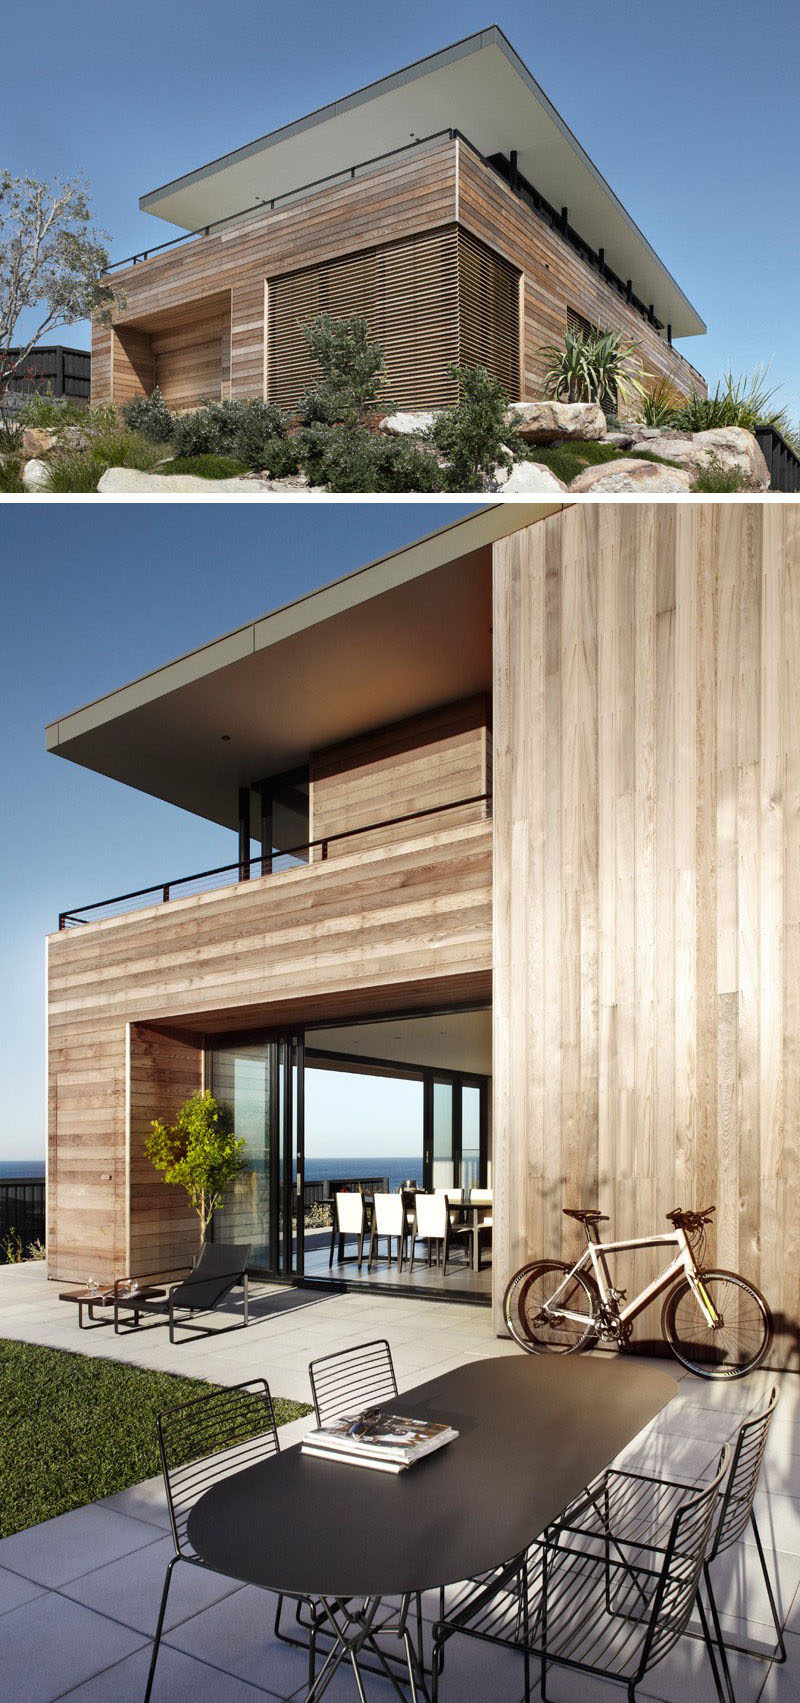 14 examples of modern beach houses from around the world for Modern contemporary homes